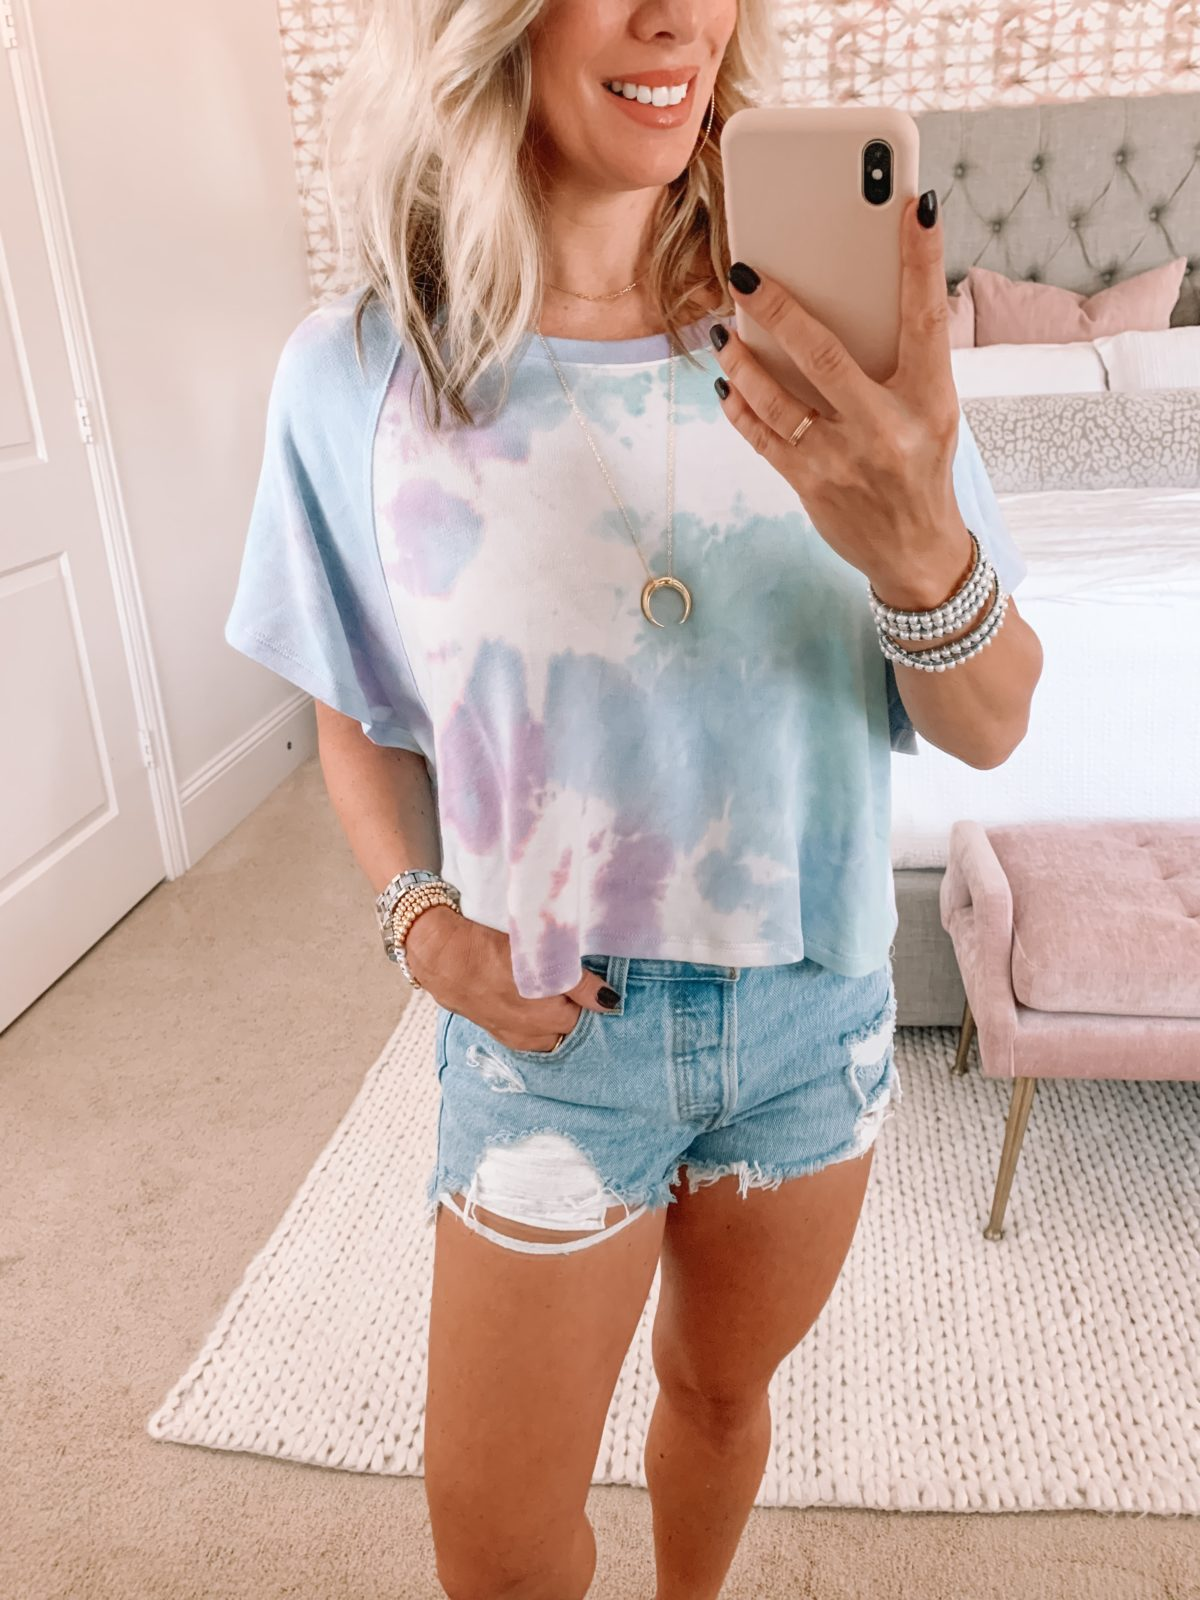 Red Dress Fashion Finds, Tie Dye Top, Jeans Shorts